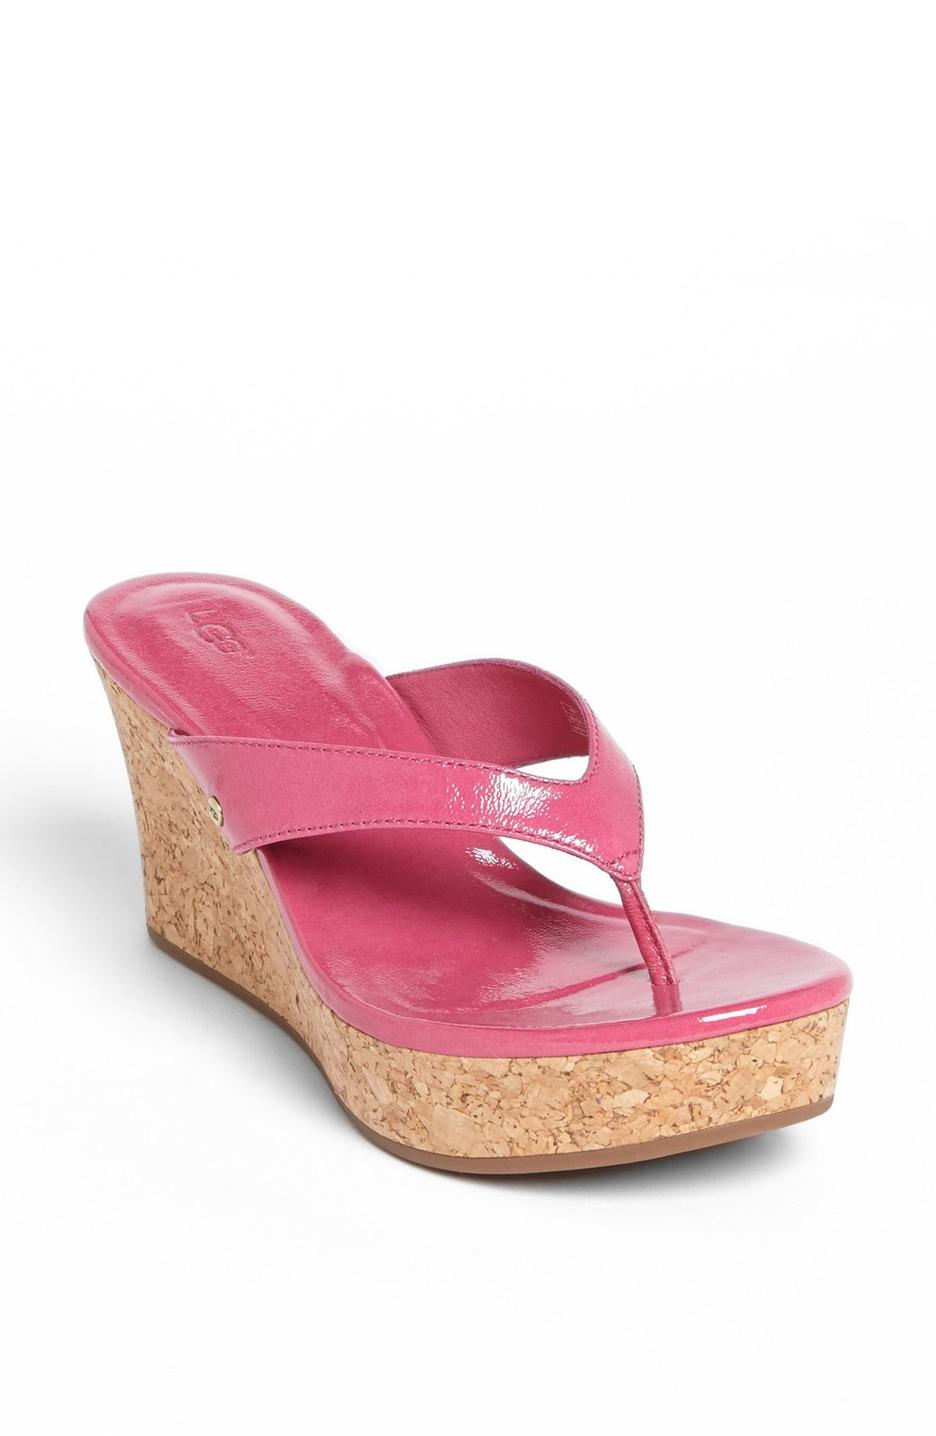 UGG-Womens-Natassia-Trendy-Cushioned-Patent-Platform-Wedge-